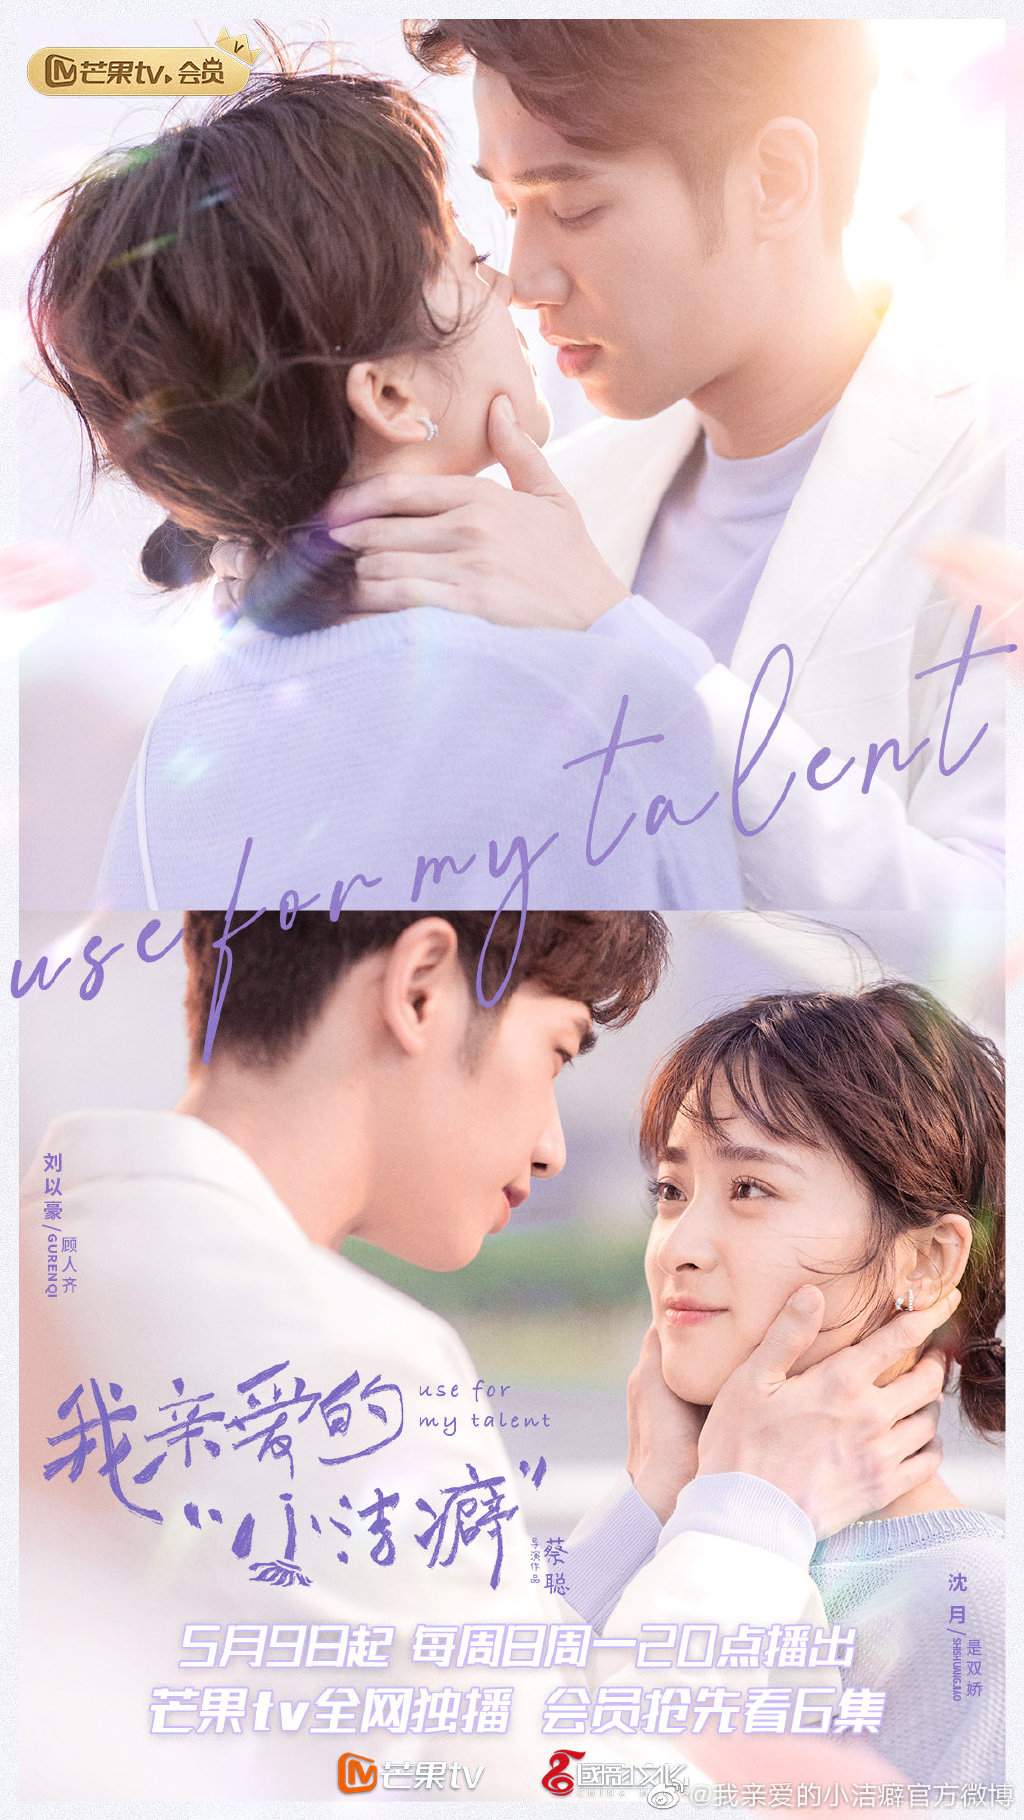 use me for my talent - new chinese dramas in 2021 poster